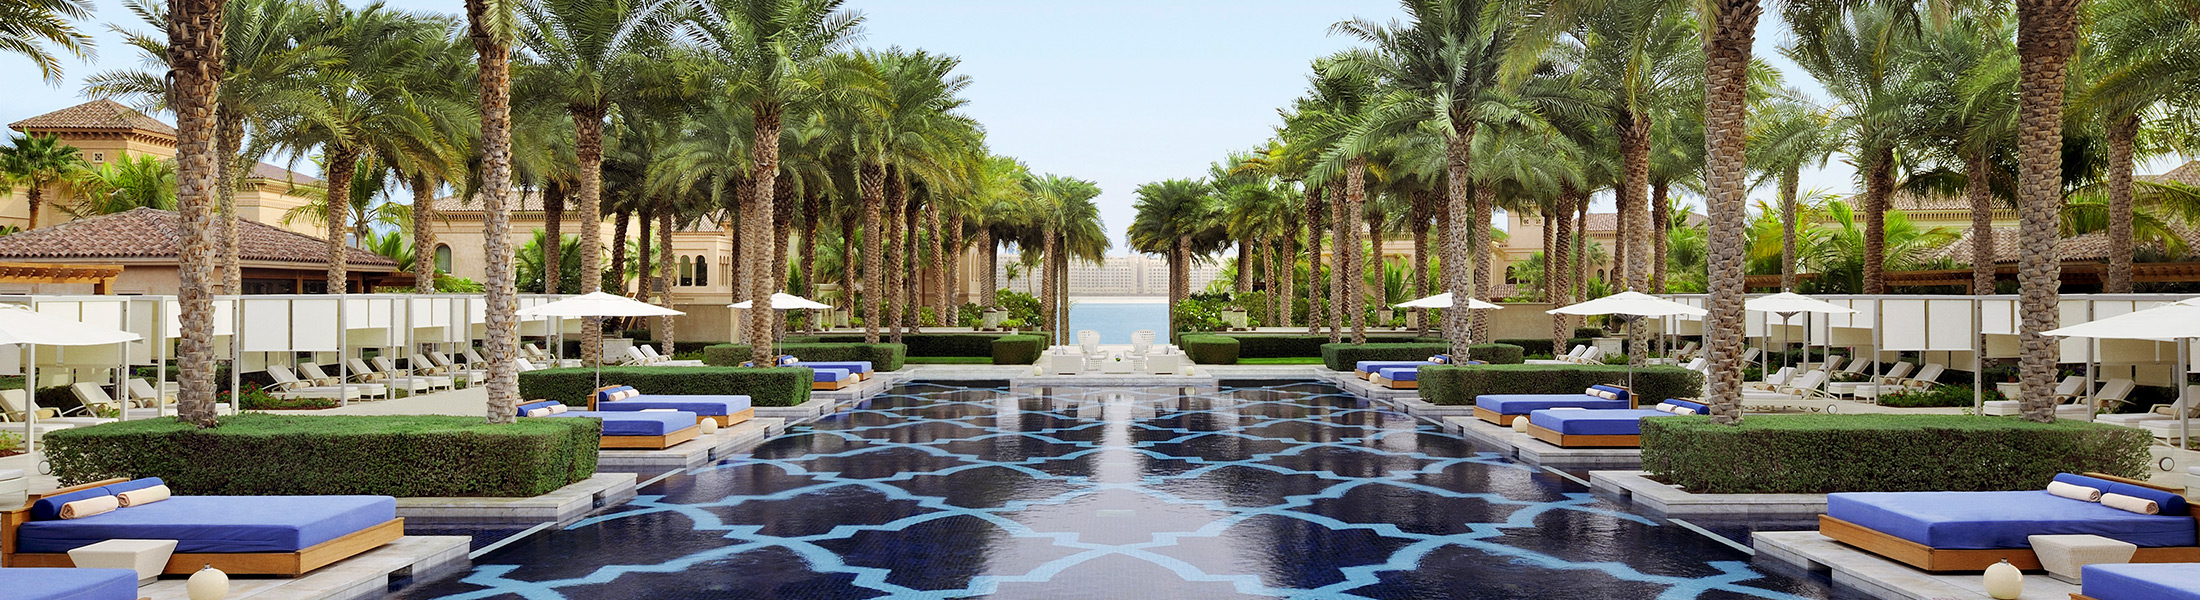 Main pool at Manor House at One&Only The Palm